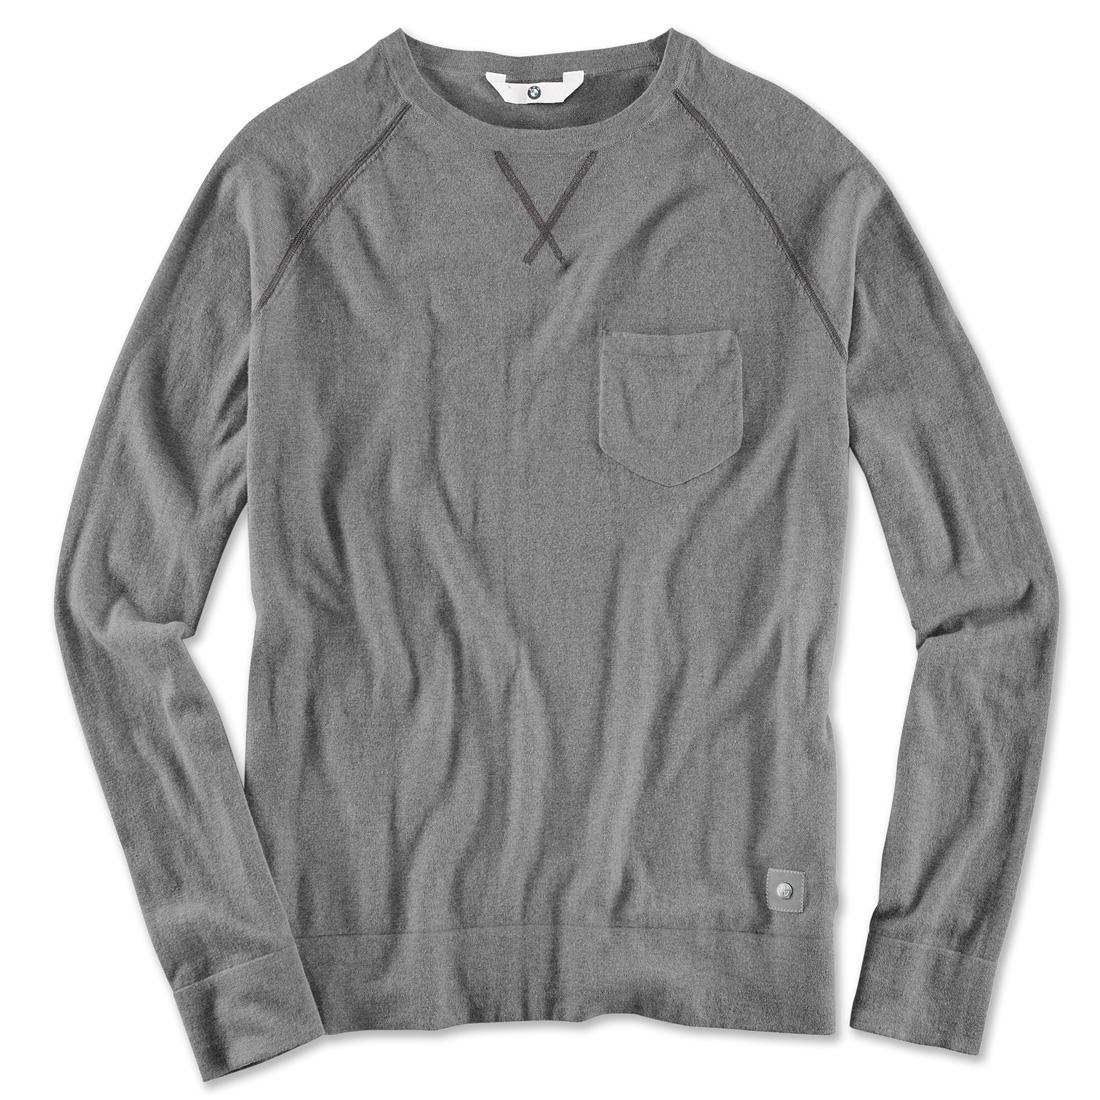 BMW Men's Knit Melange Sweater Asphalt Grey